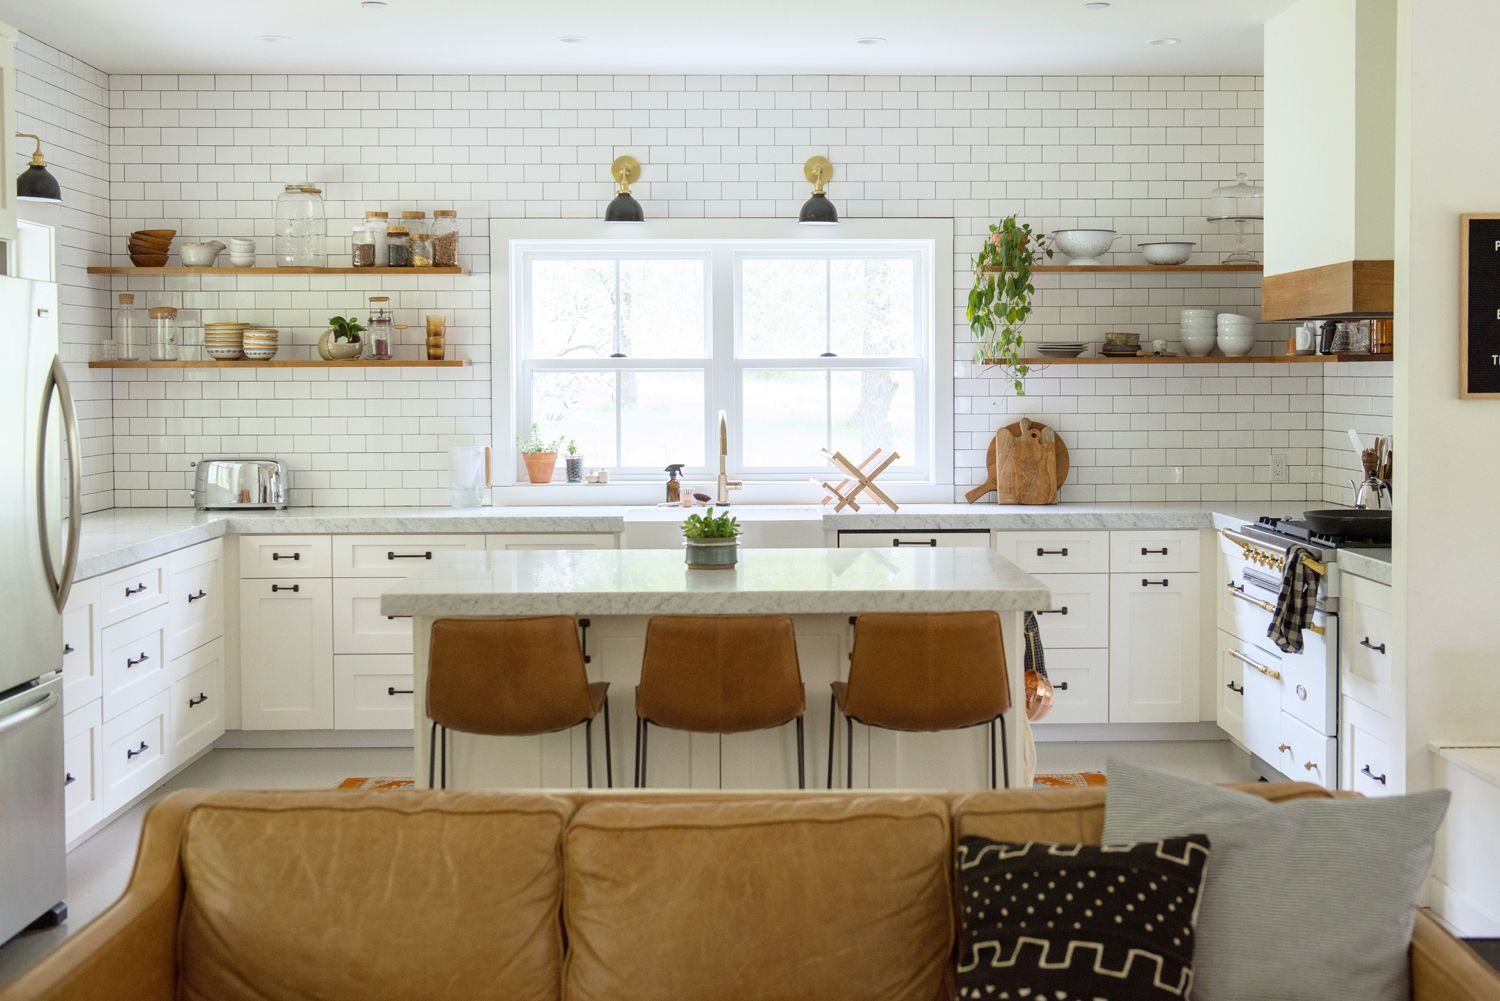 west elm Kitchen — The Homegrown Apple | House Tours in 2019 ...